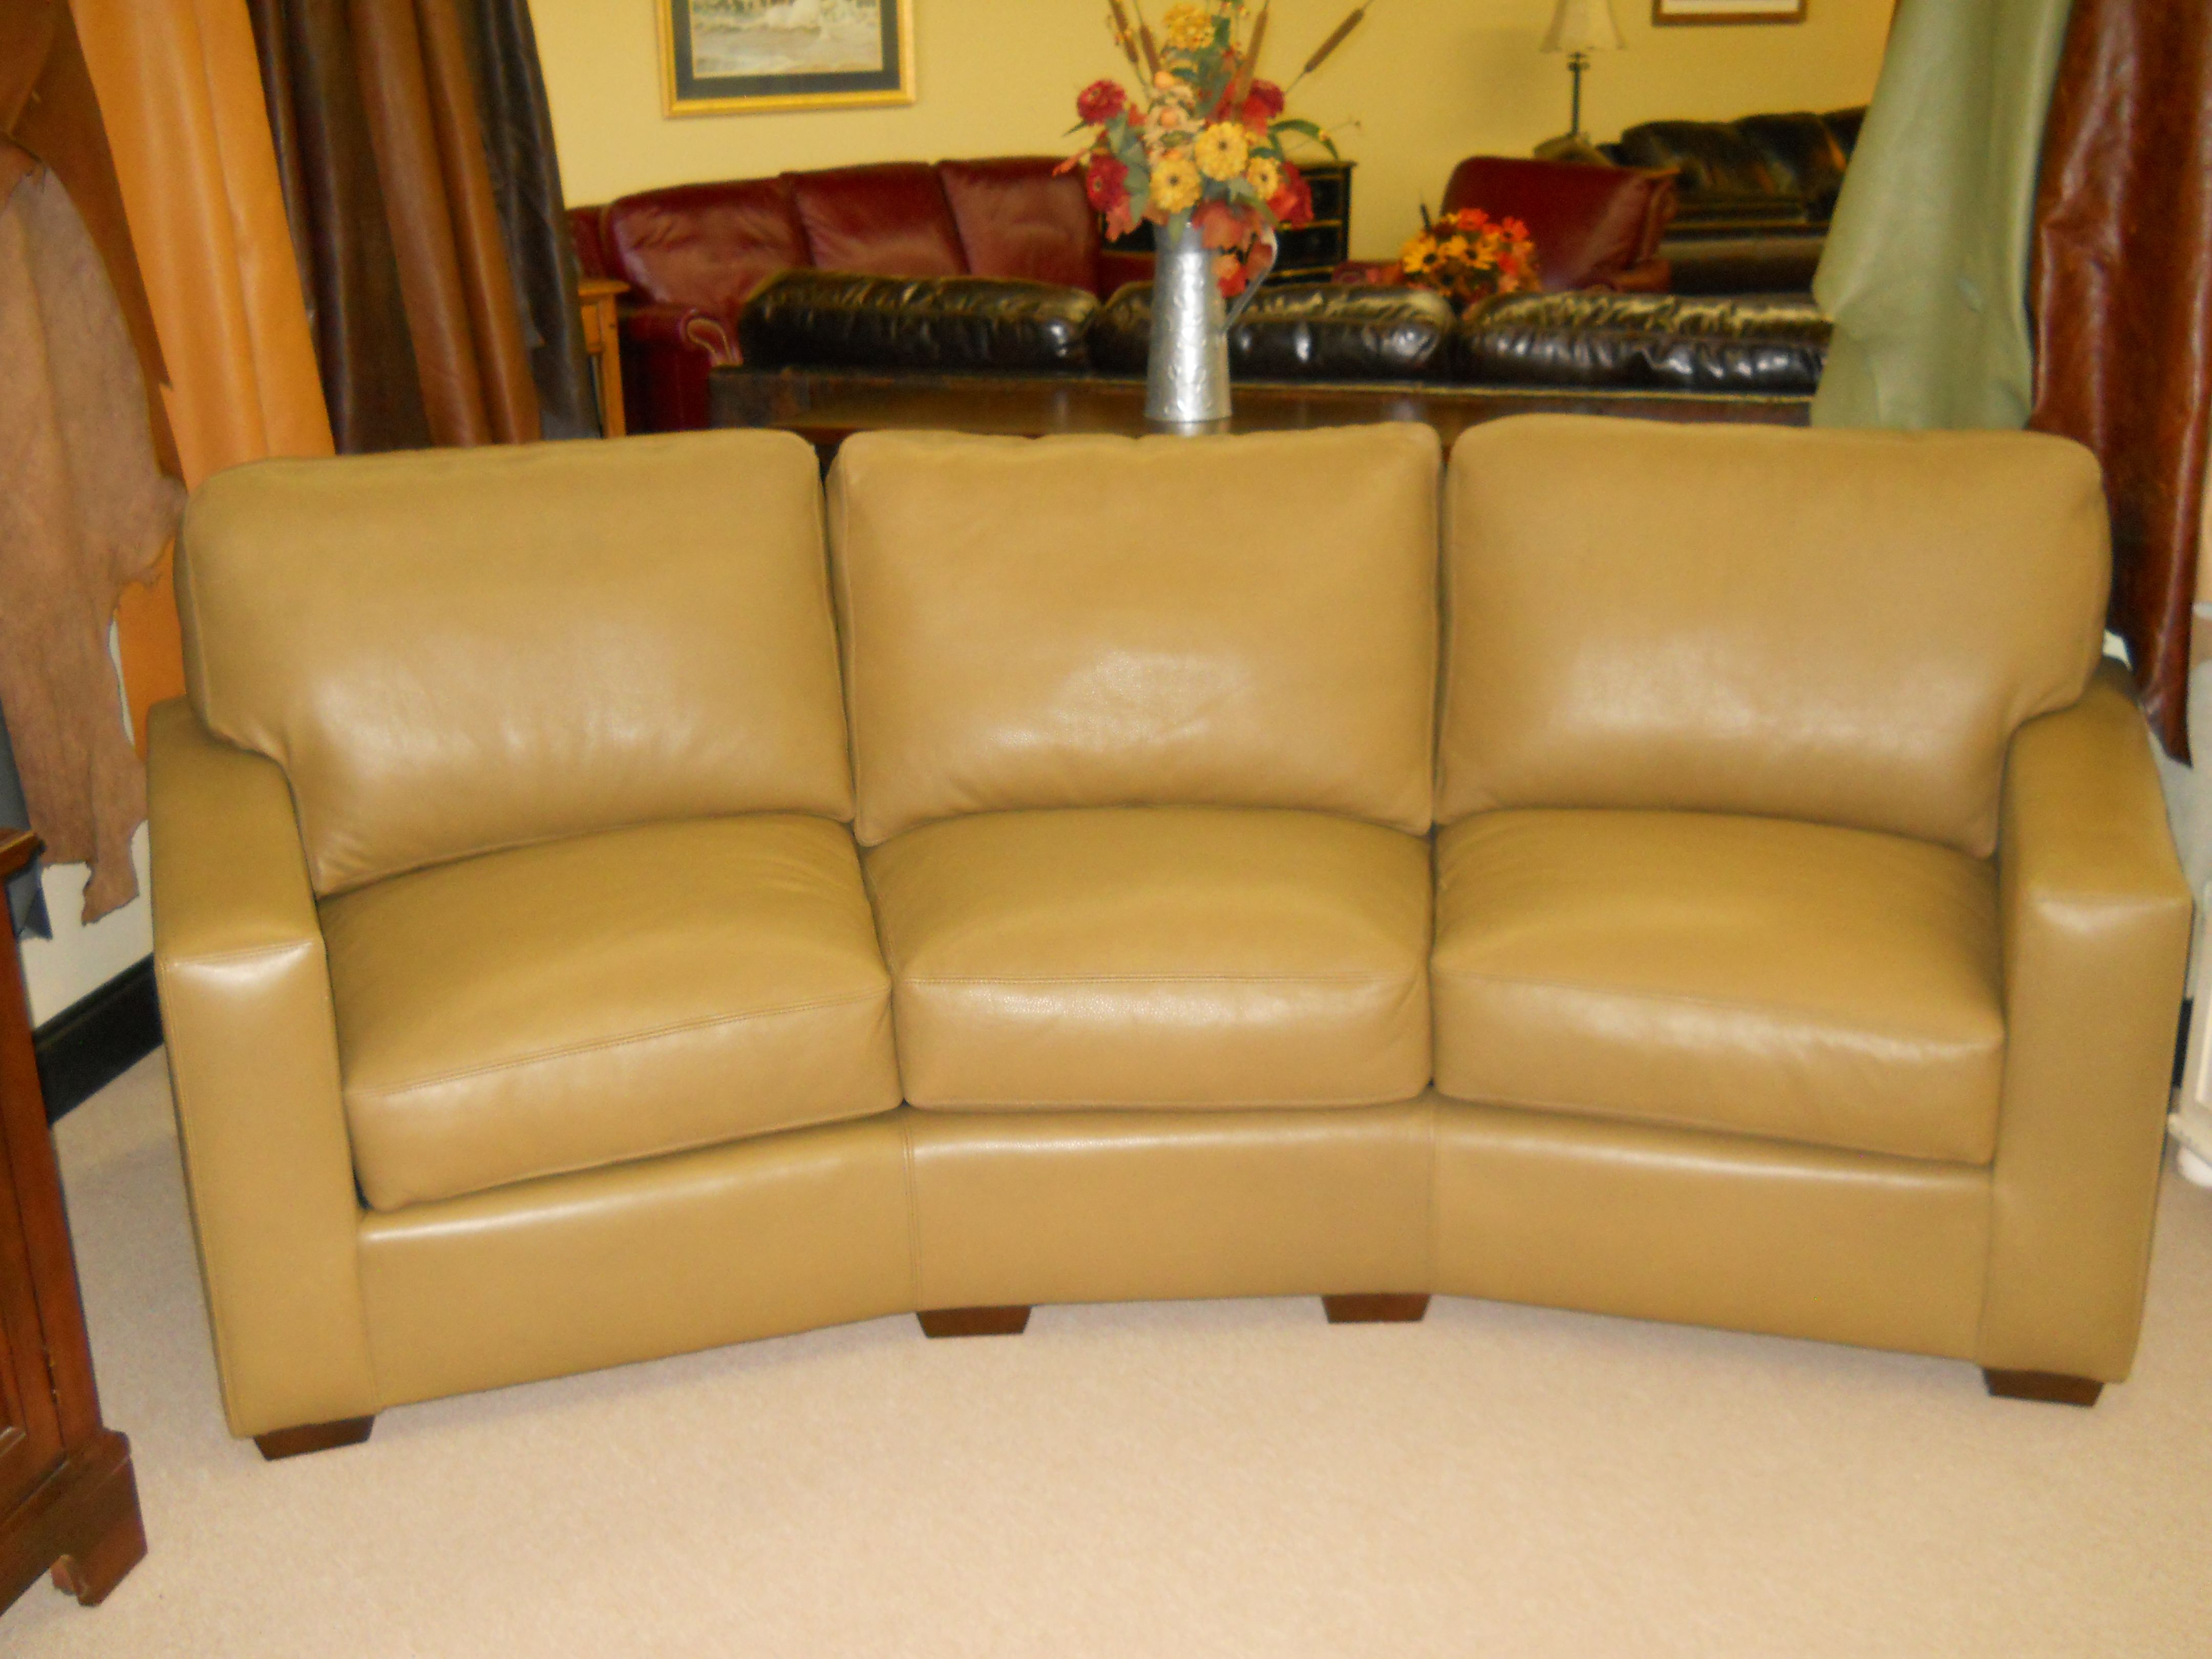 Conversation Sofa In A Very Soft Bison Leather What A